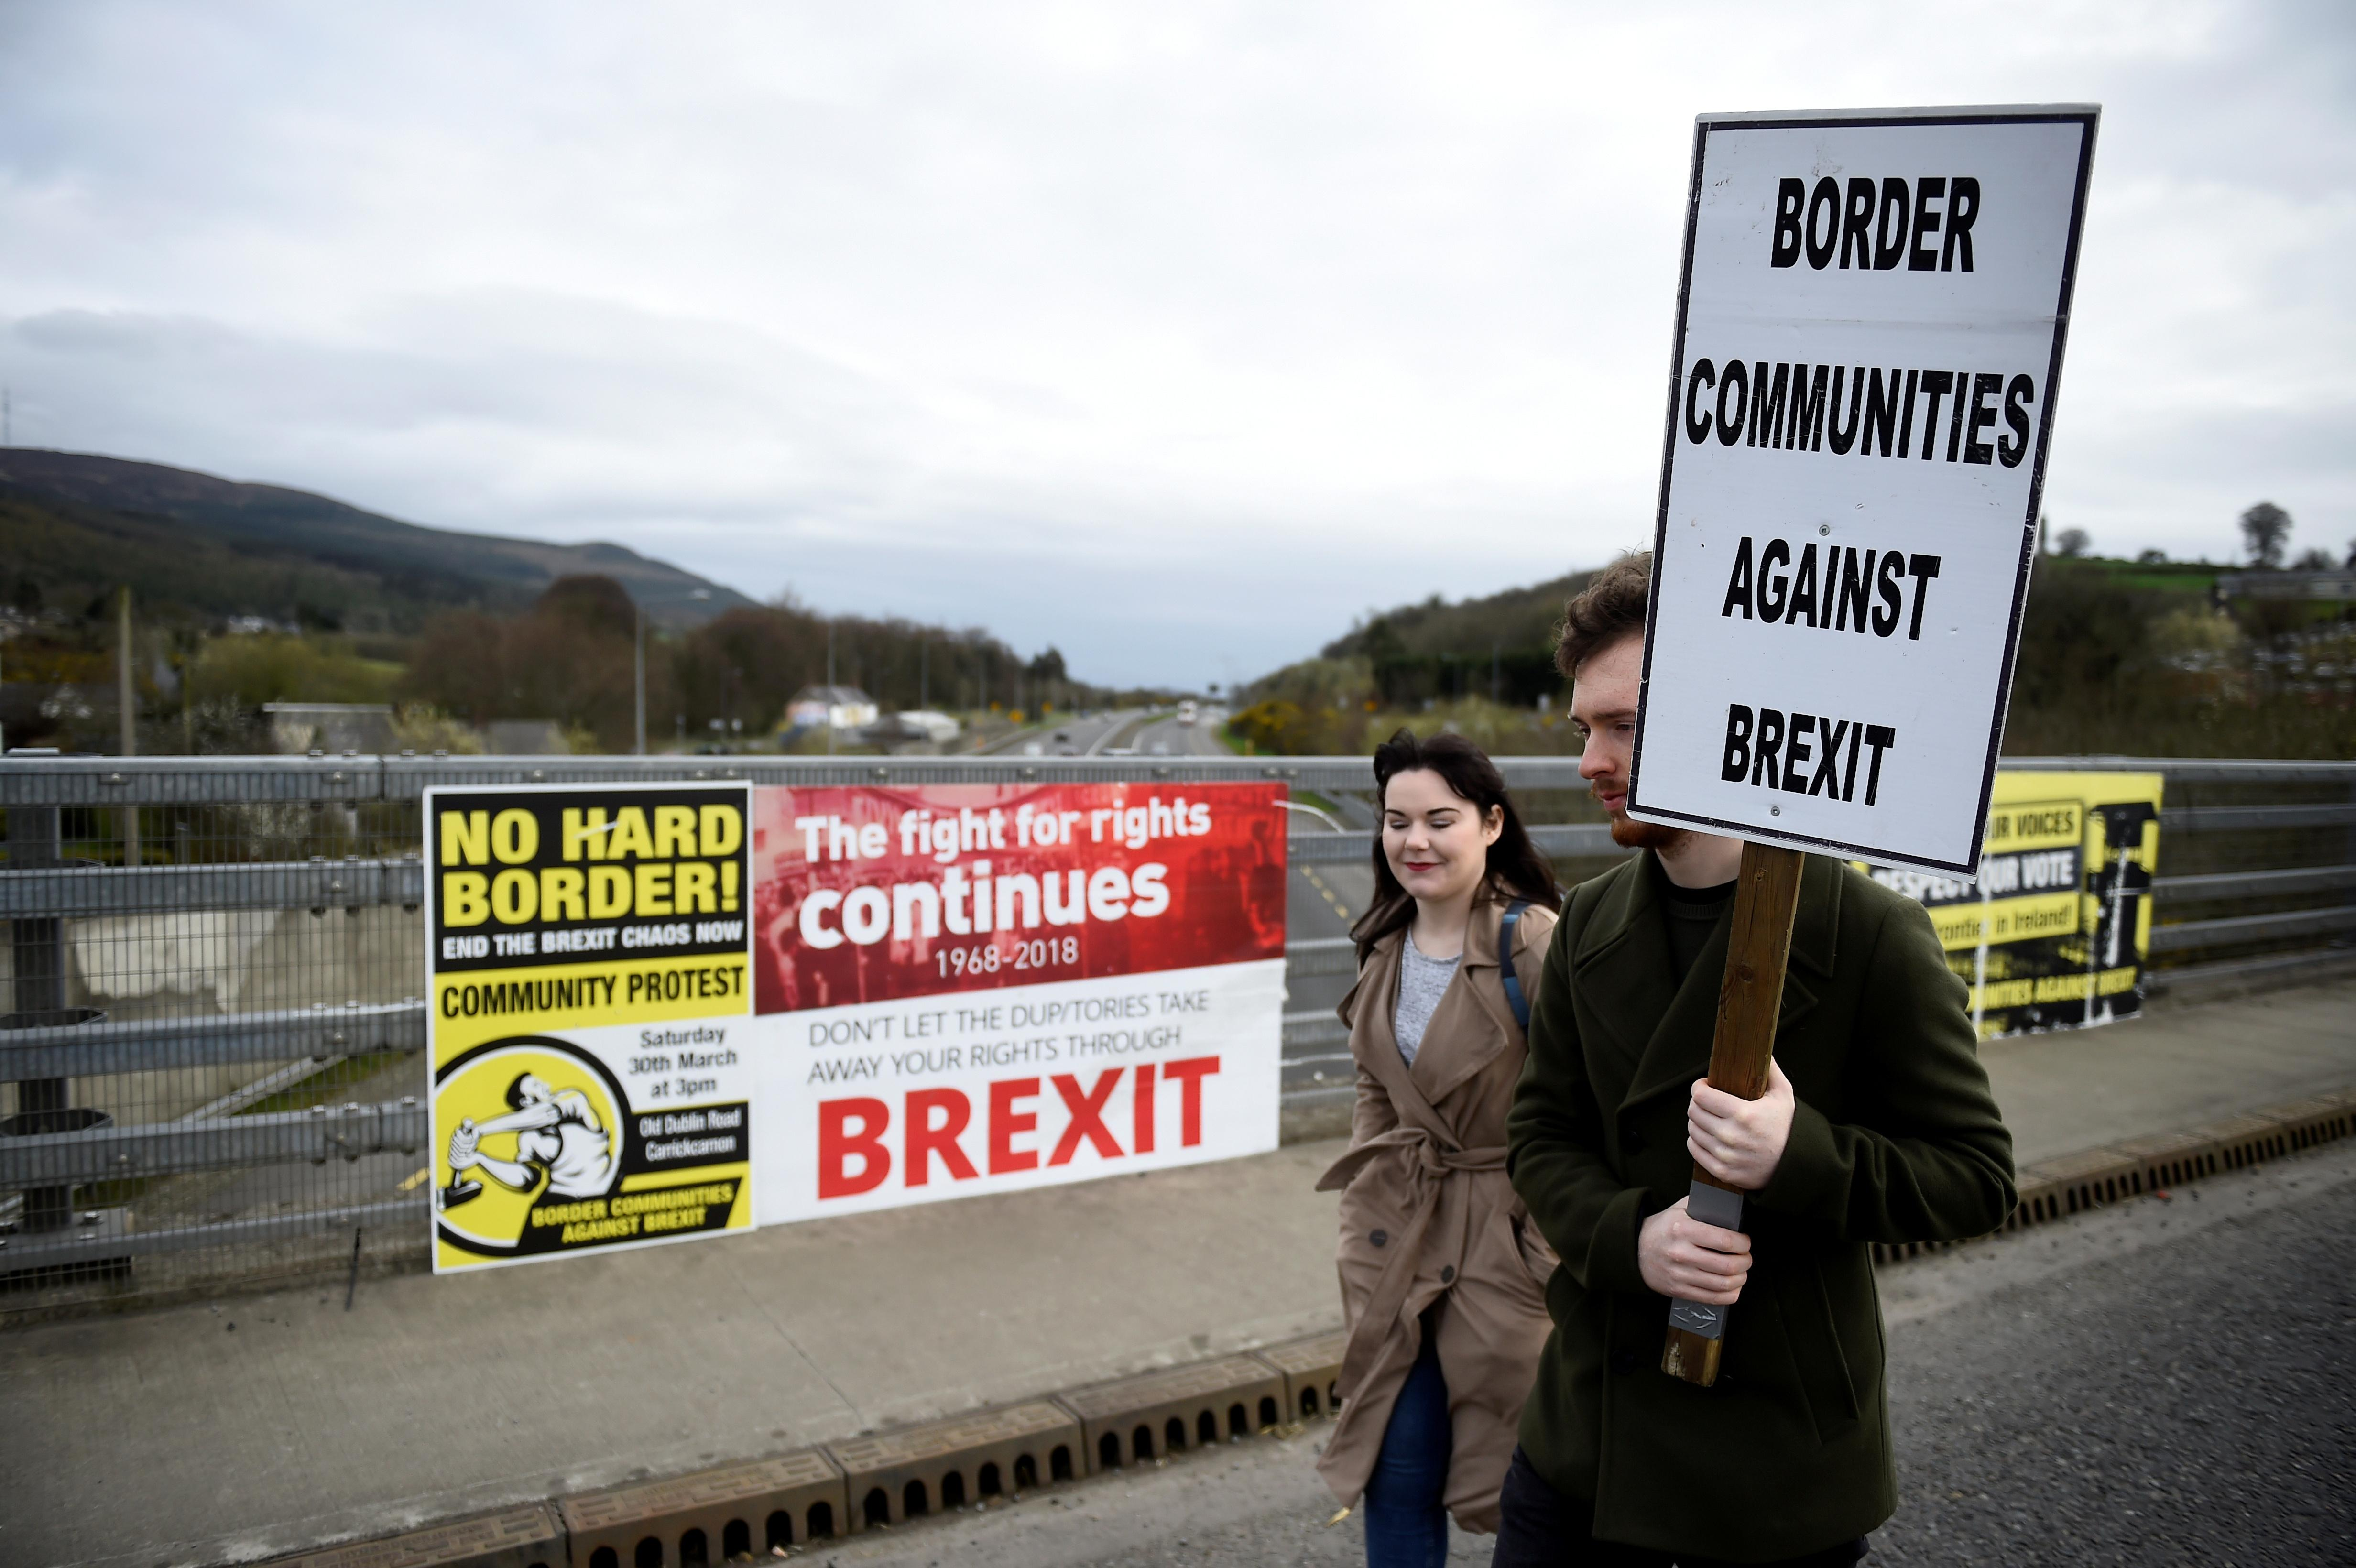 Up to Britain to propose Irish border solutions - Germany